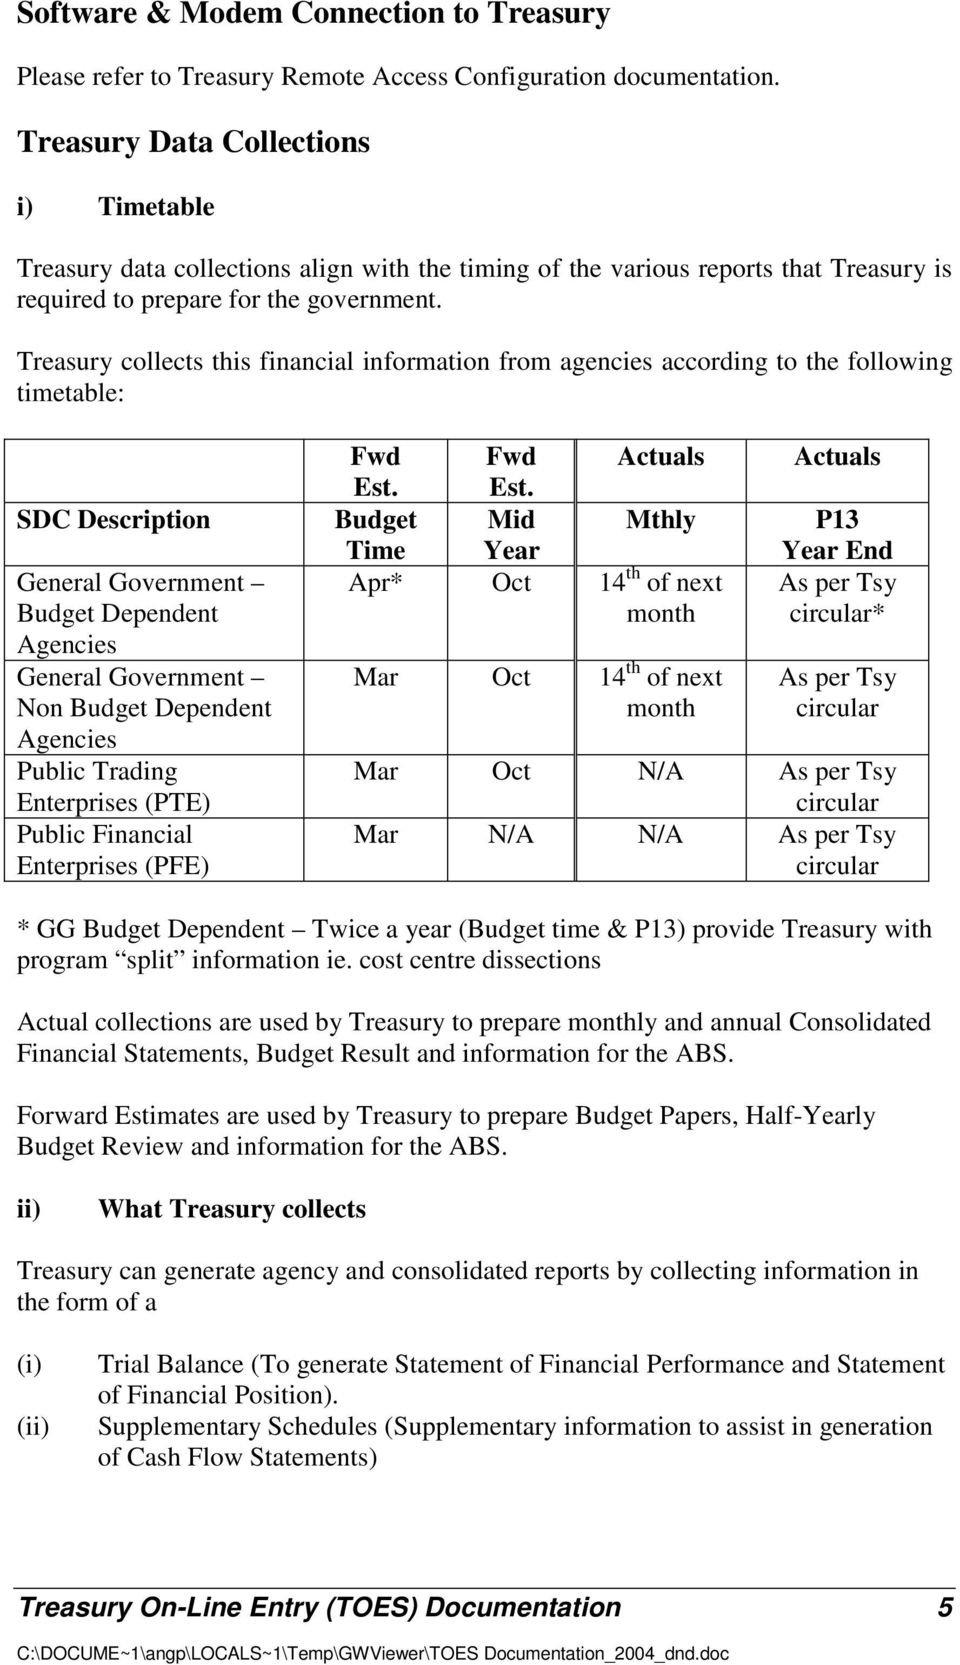 Treasury collects this financial information from agencies according to the following timetable: SDC Description General Government Budget Dependent Agencies General Government Non Budget Dependent